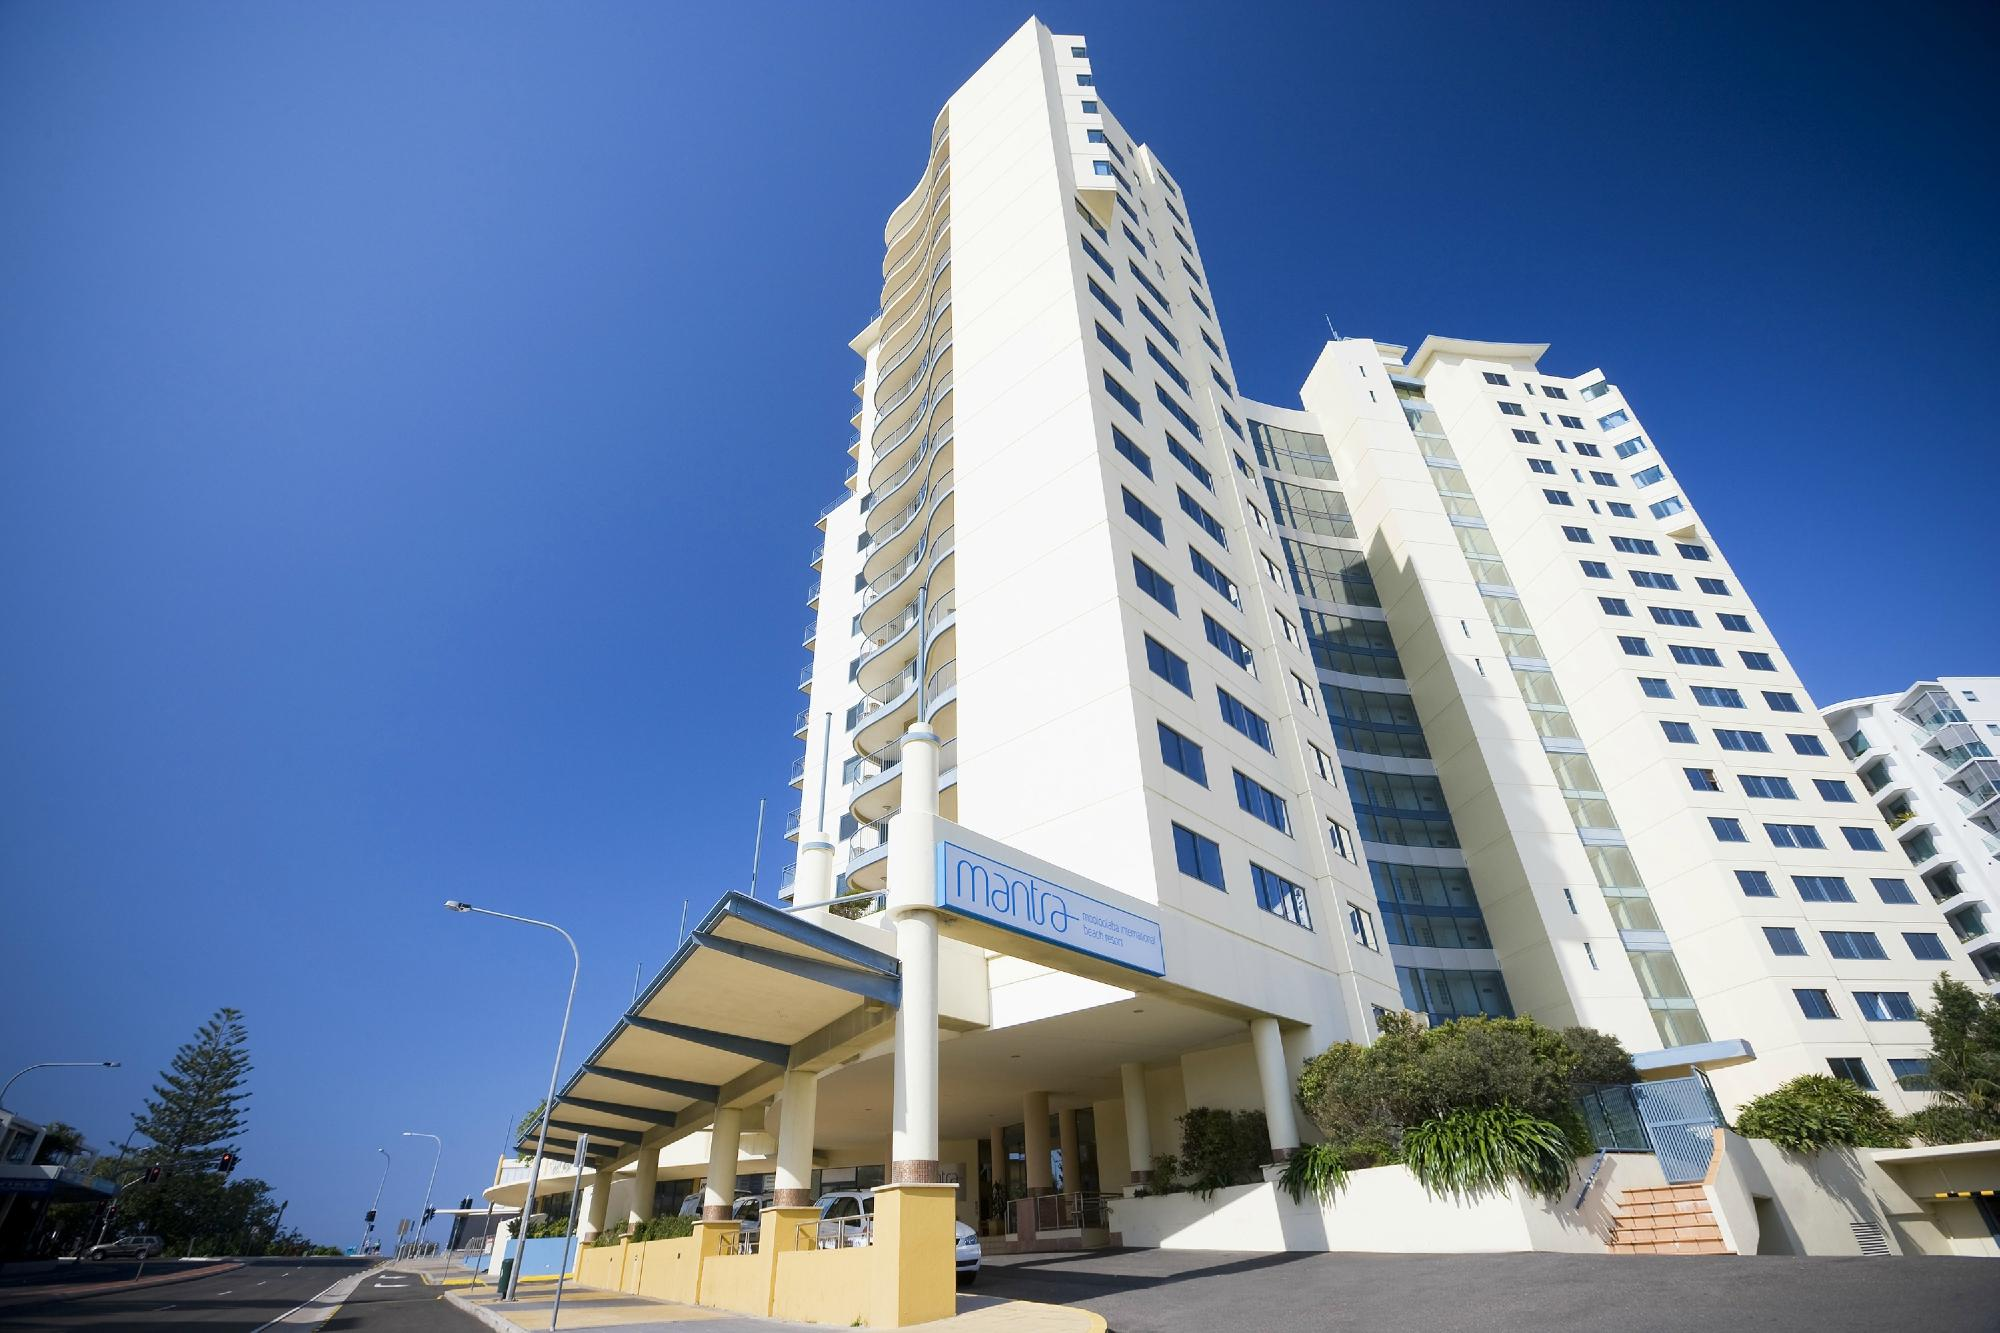 Mantra Mooloolaba Beach Resort